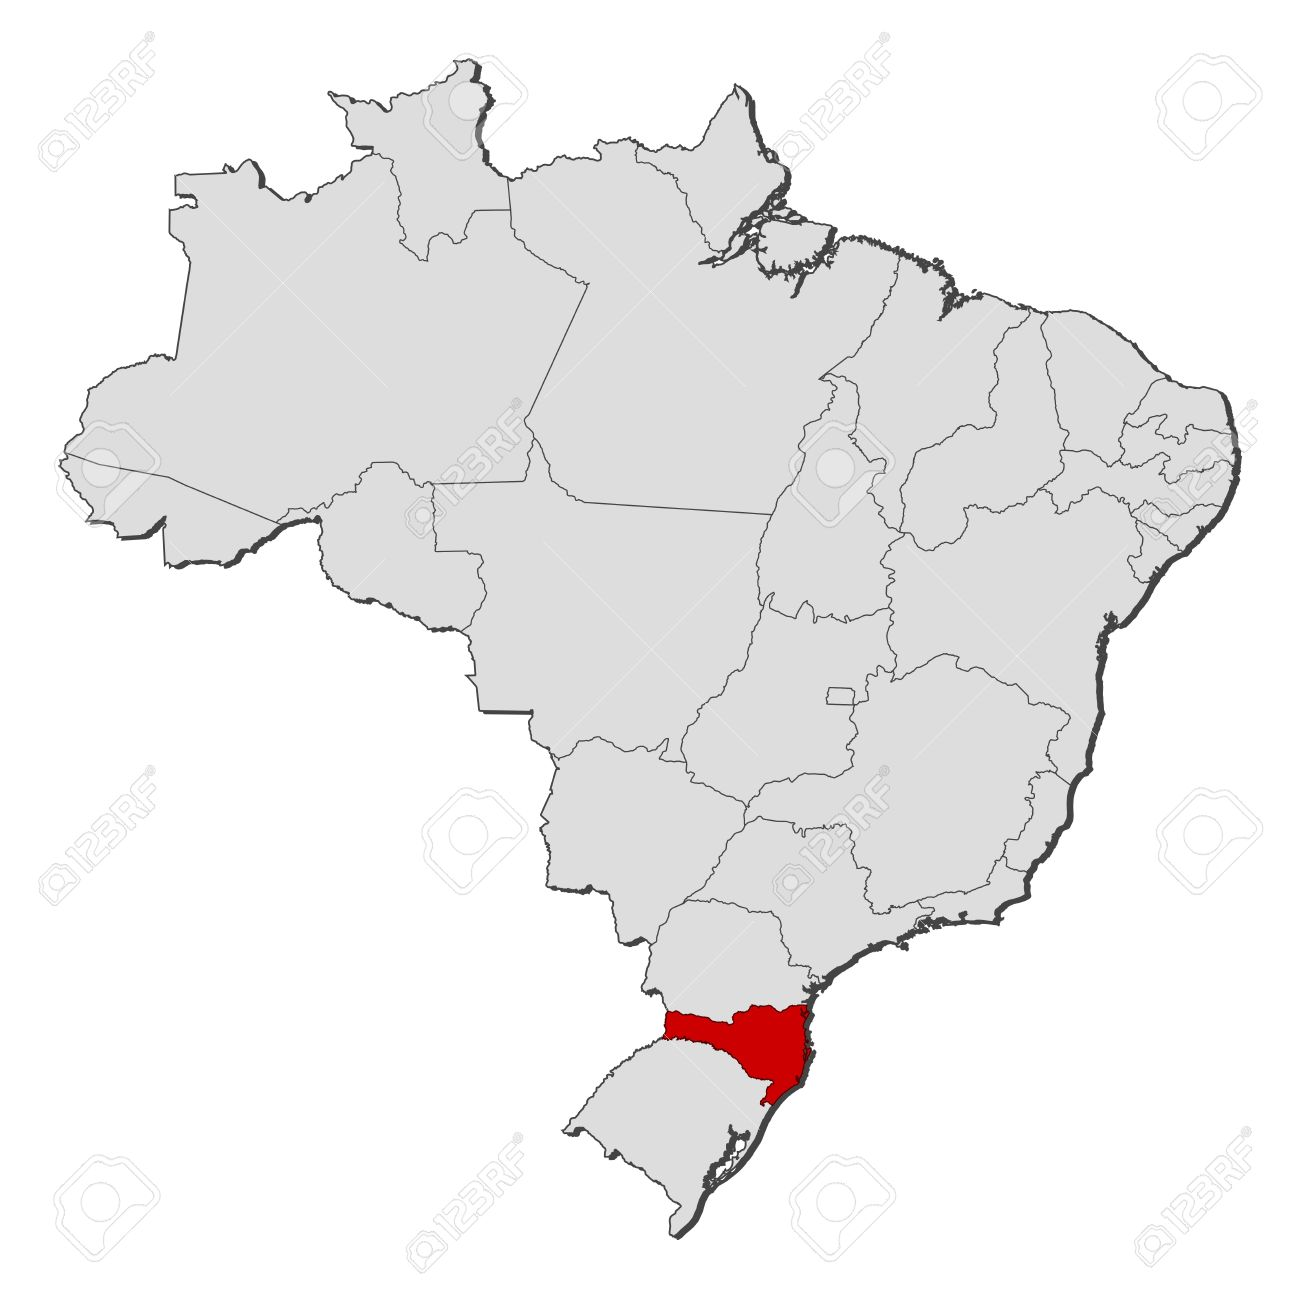 Political Map Of Brazil With The Several States Where Santa - Political map of brazil